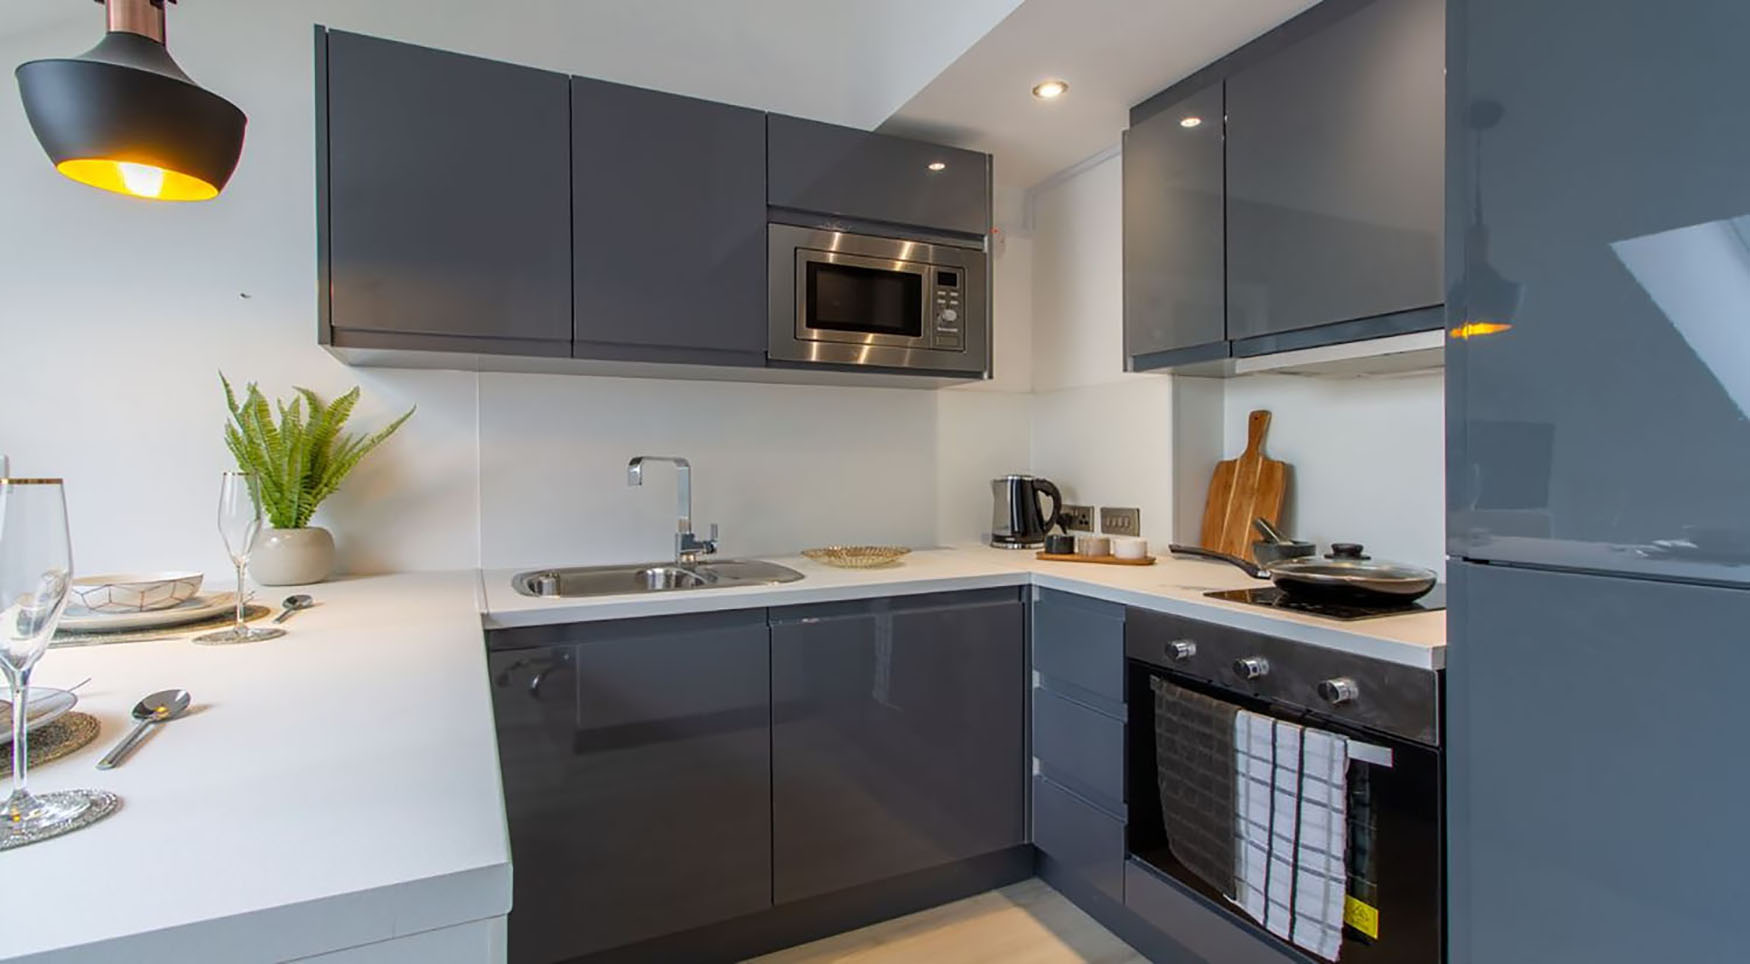 Kitchen at The Residence Coventry, Centre, Newmarket - Citybase Apartments